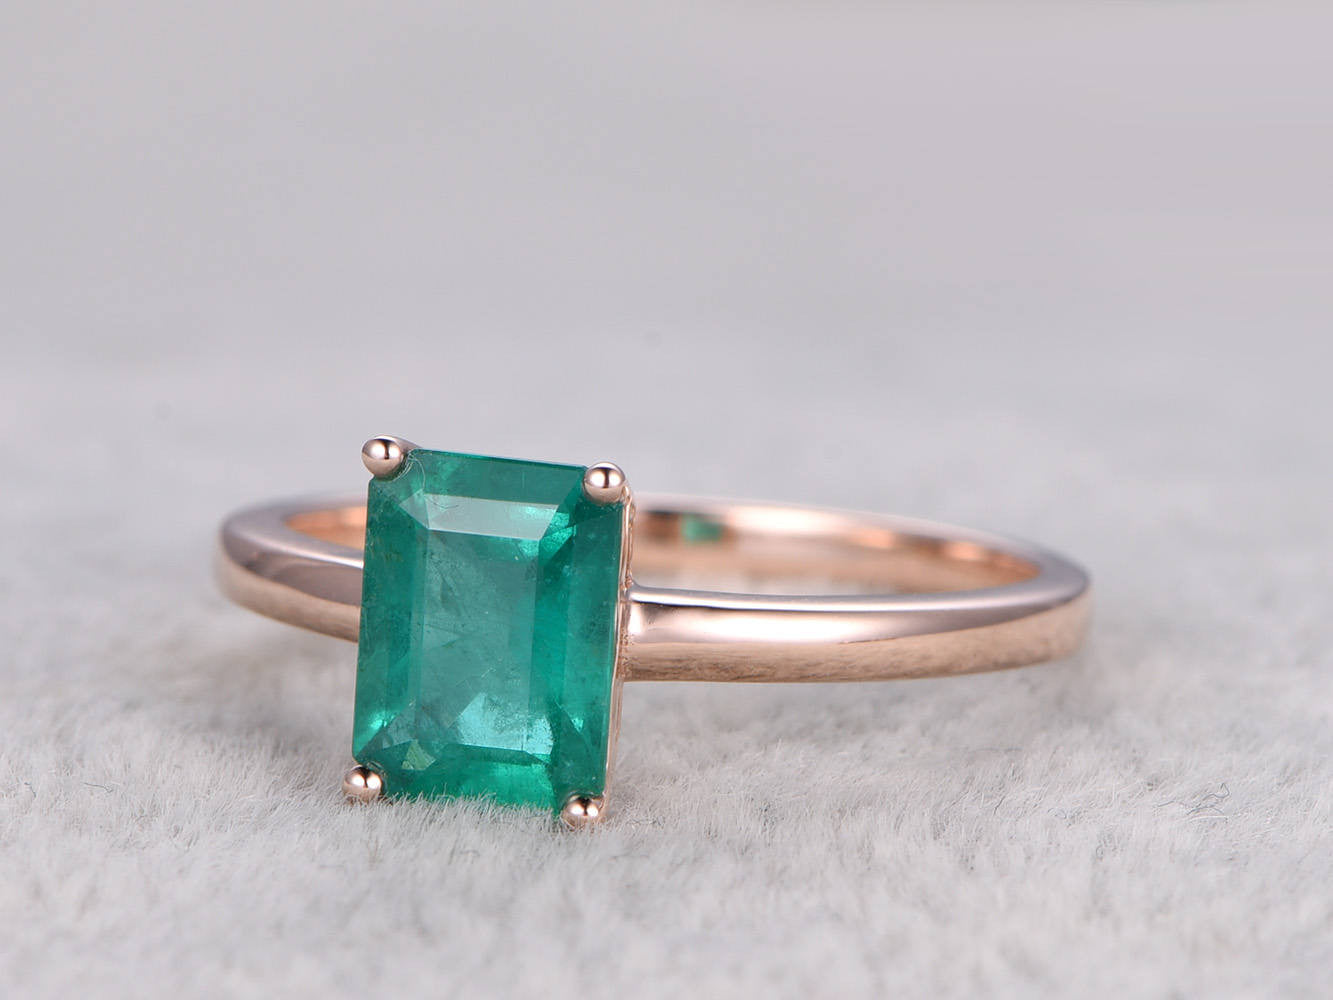 Natural Emerald Engagement ring Rose gold,Solitaire Ring,14k,6x8mm Emerelad Cut,Green Gemstone Promise Ring,Plain gold band,Anniversary Ring